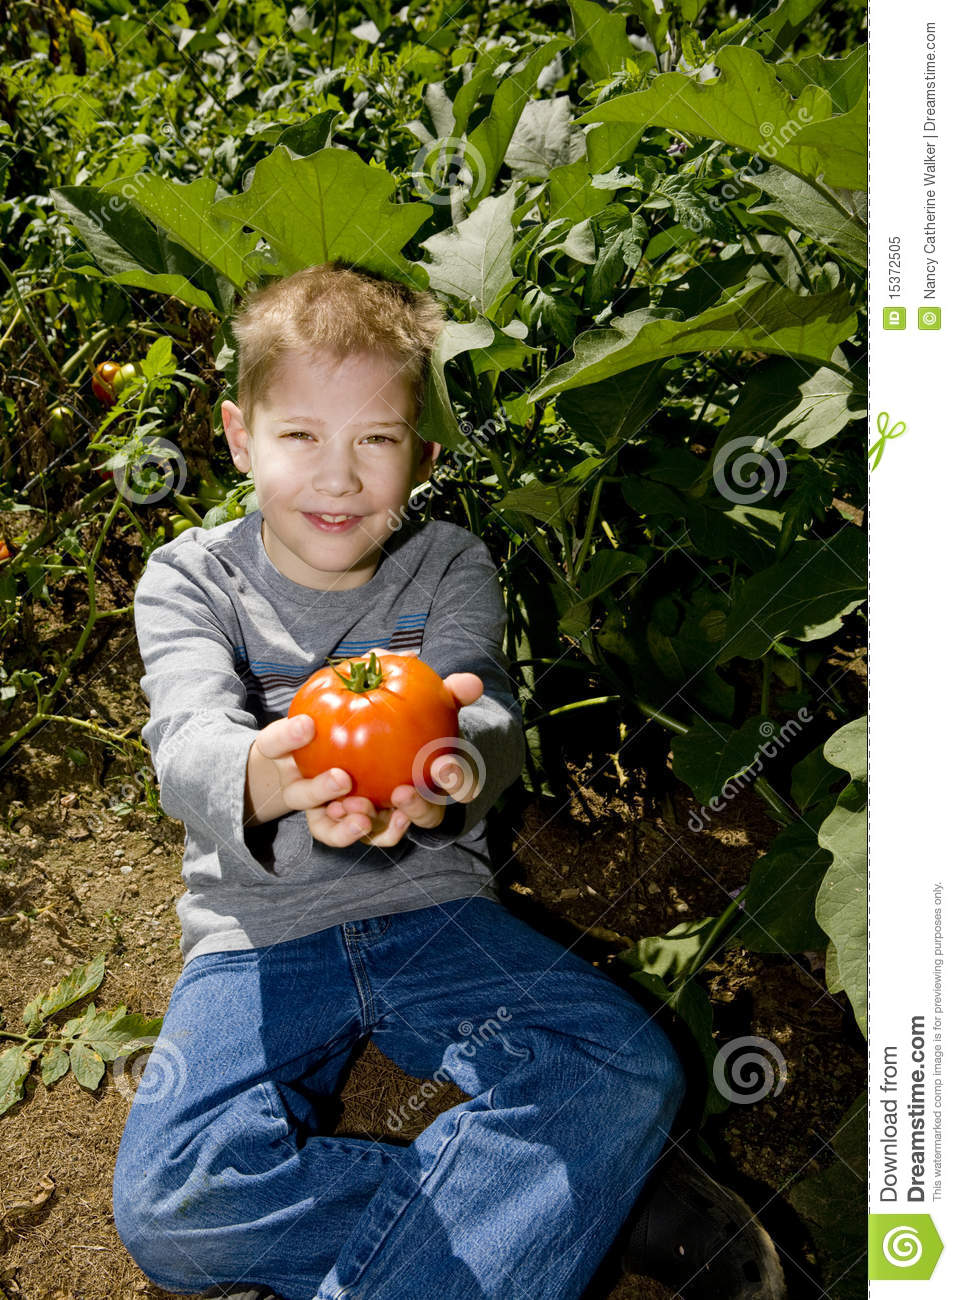 Child offers tomato